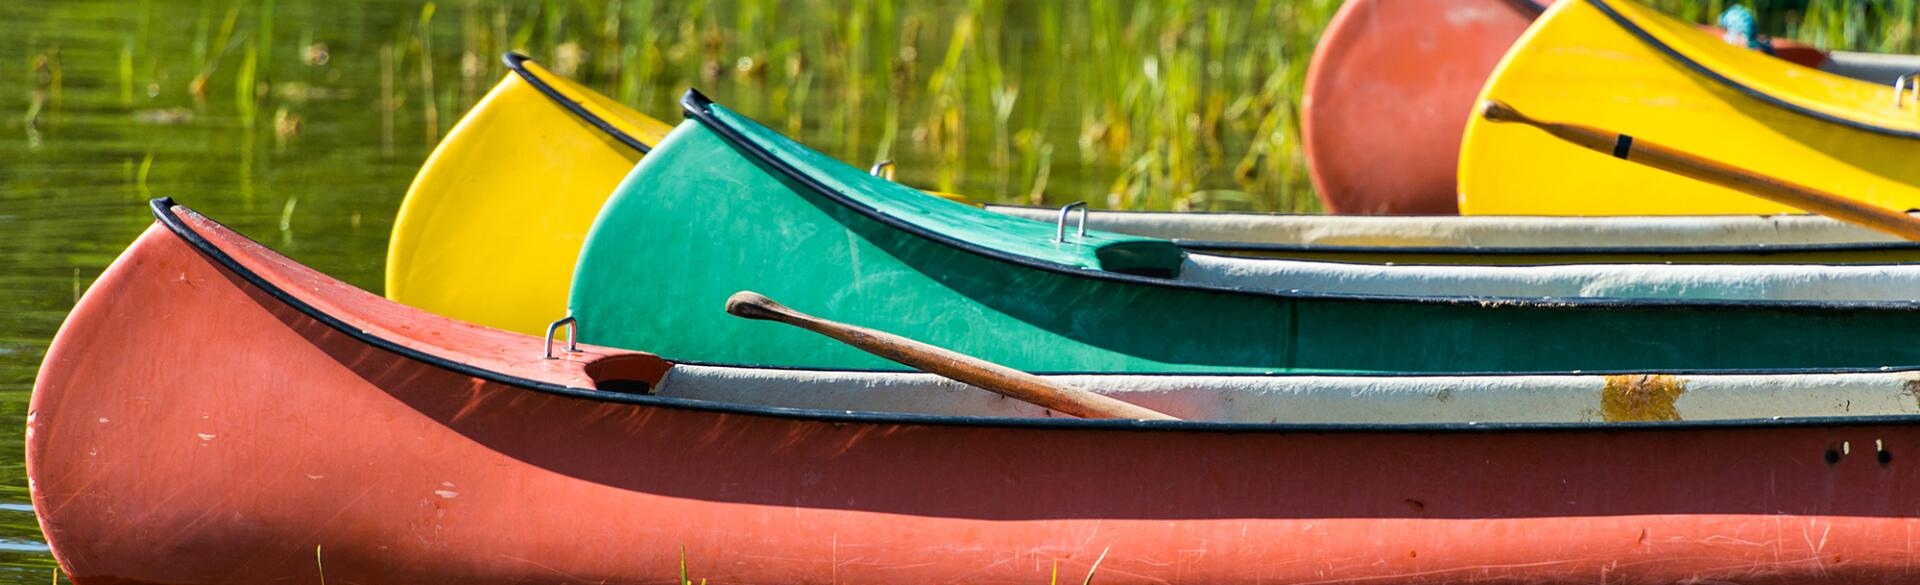 I still go back to summer camp as an adult, photo of canoes